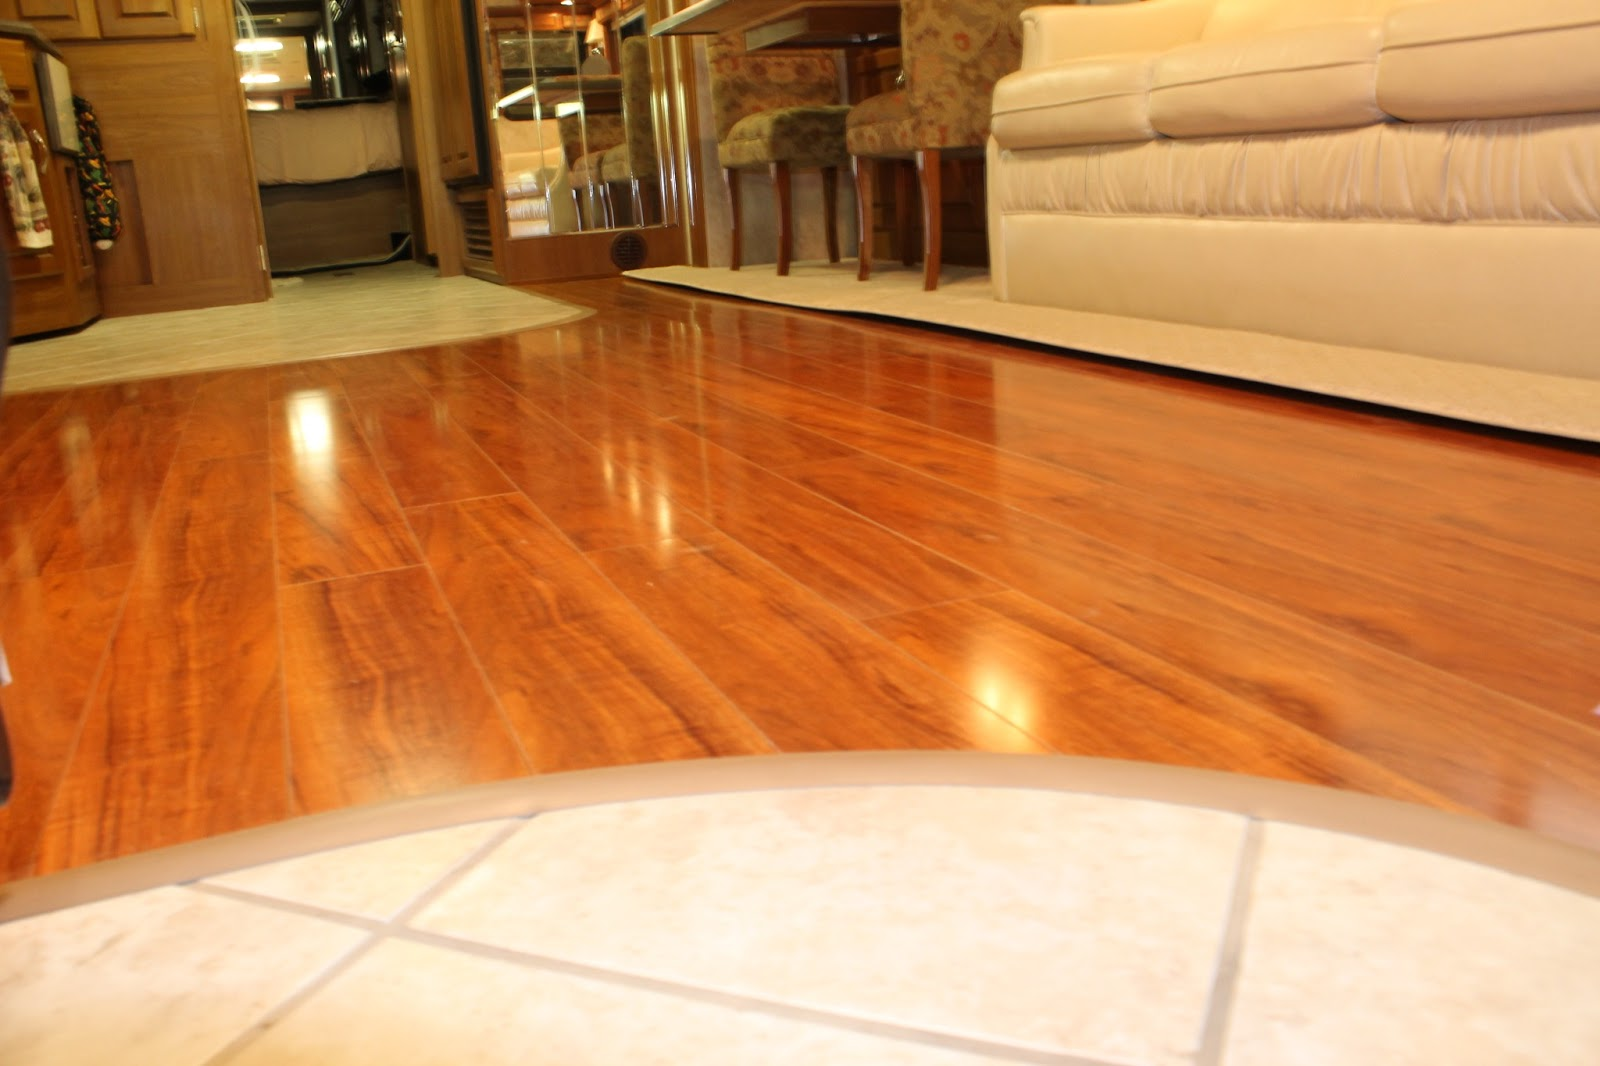 Countryside interiors transforming rvs and trailers for Rubber hardwood flooring